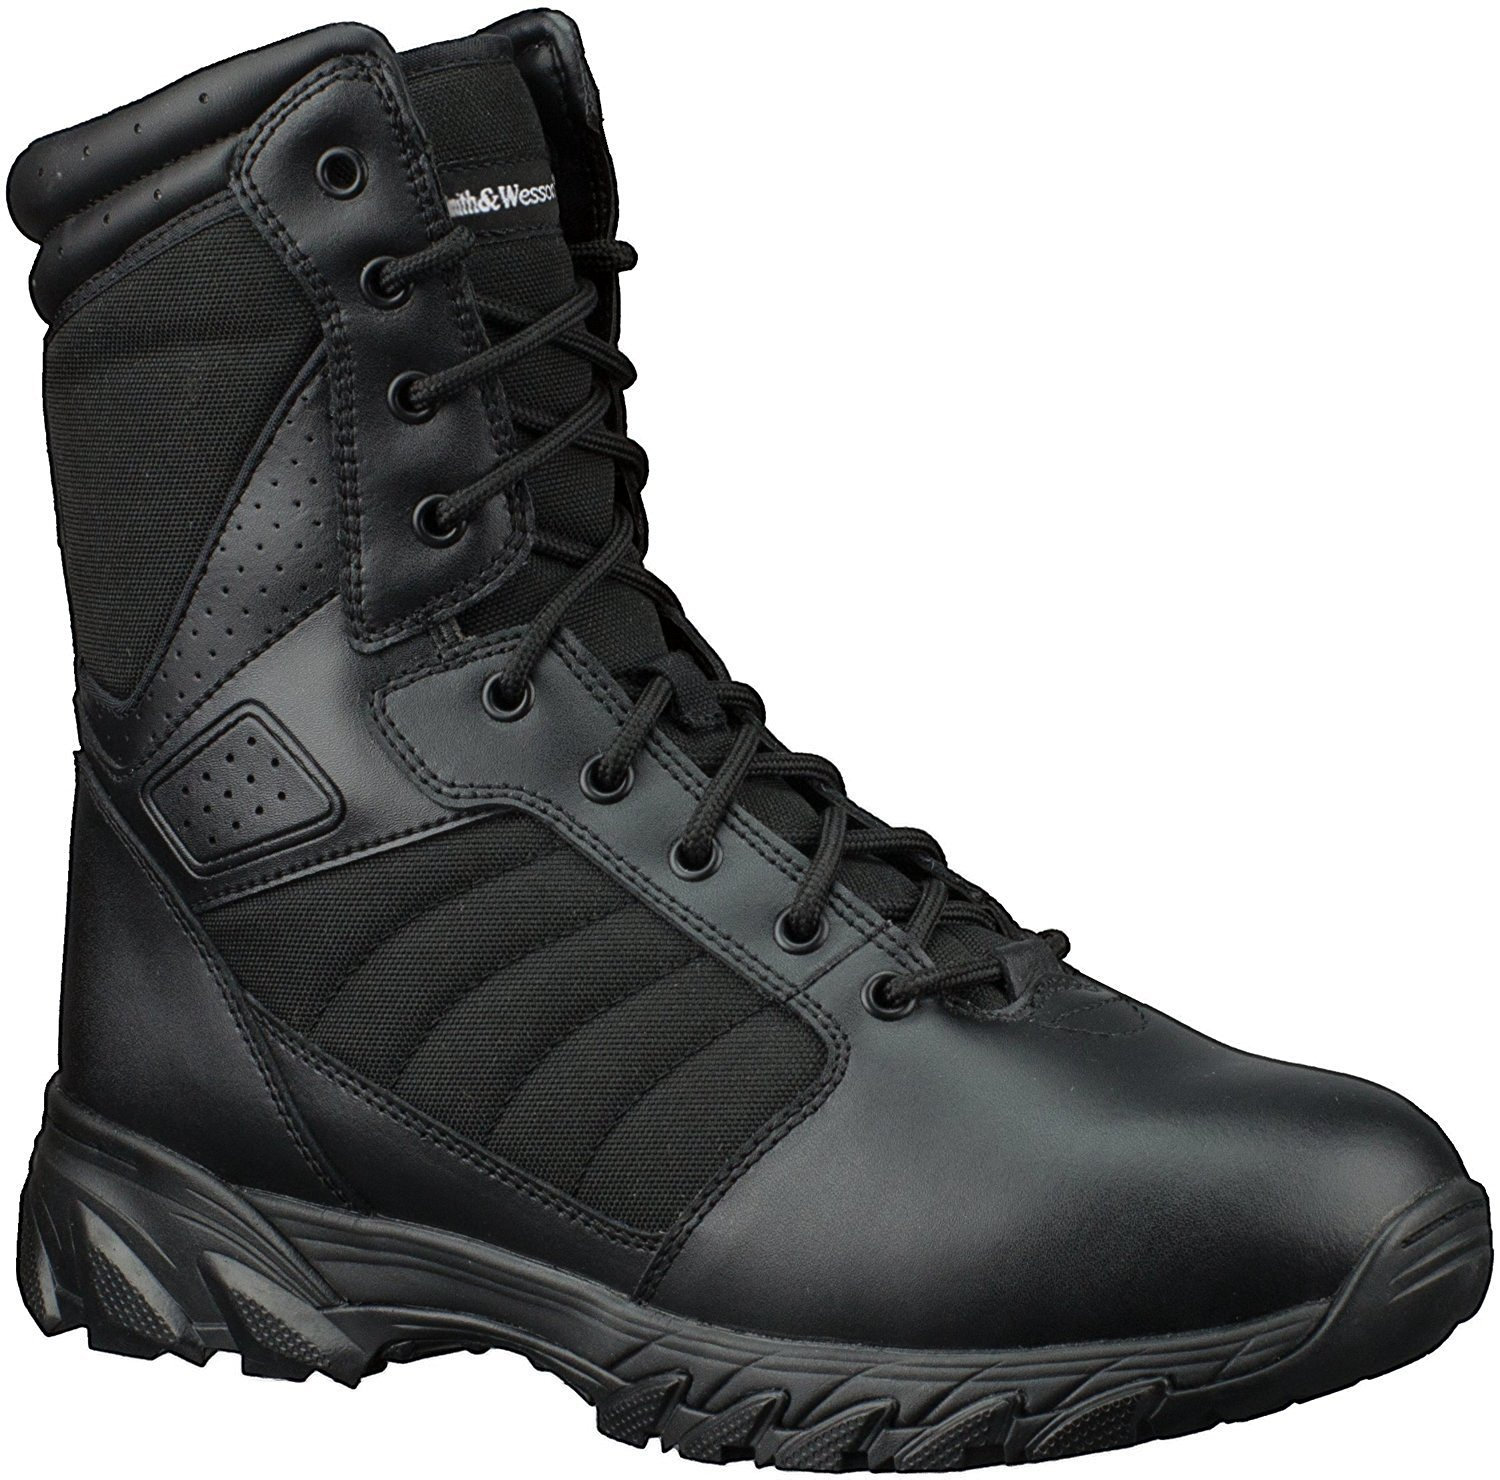 Smith & Wesson Breach 2.0 Men's Tactical Boots (14)